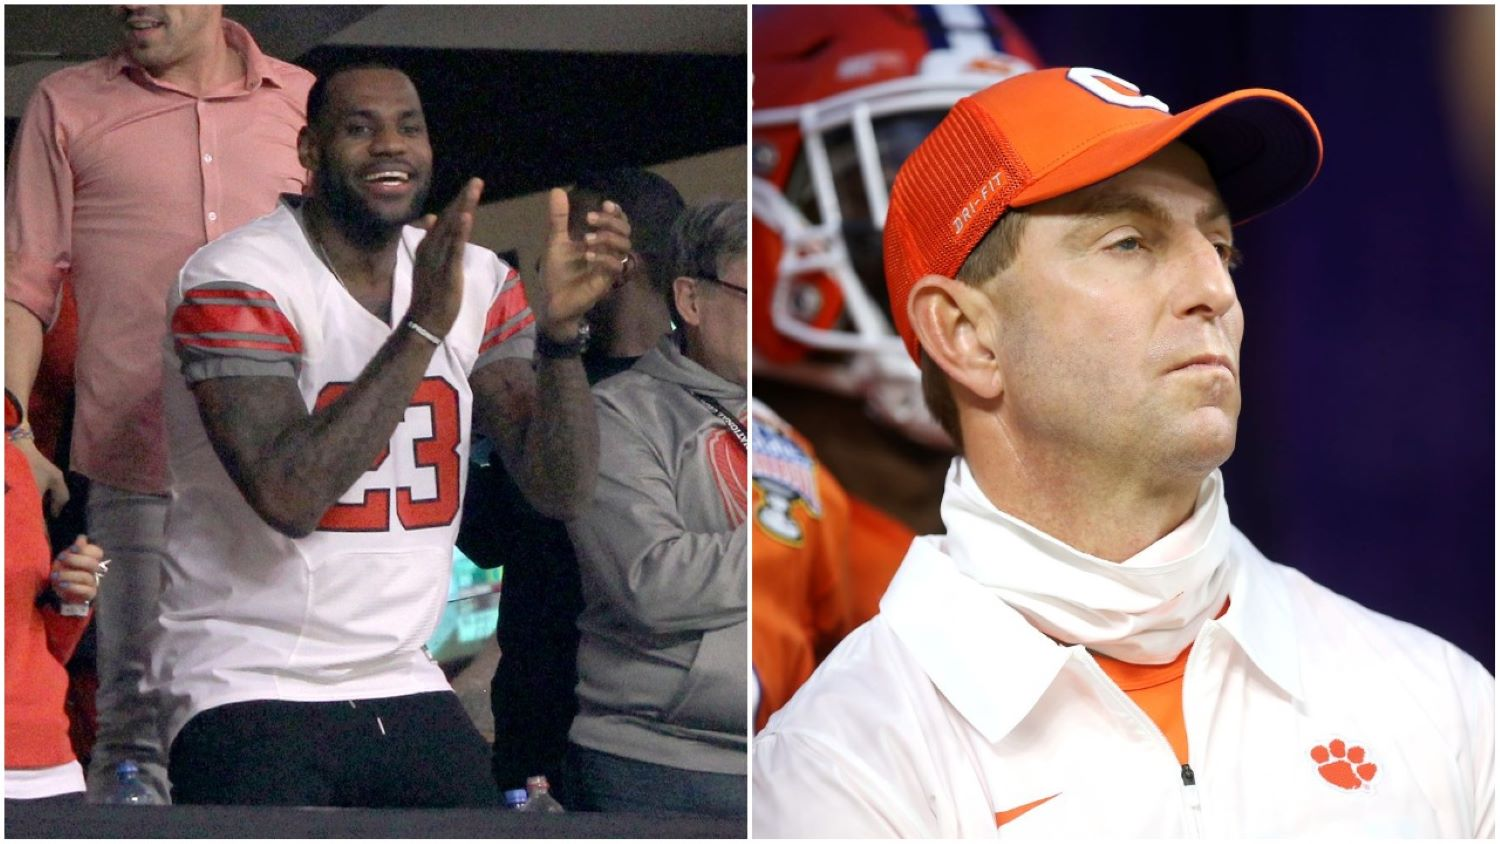 Lebron James took to Twitter to clown Dabo Swinney and celebrate Ohio State's win over Clemson in the Sugar Bowl.